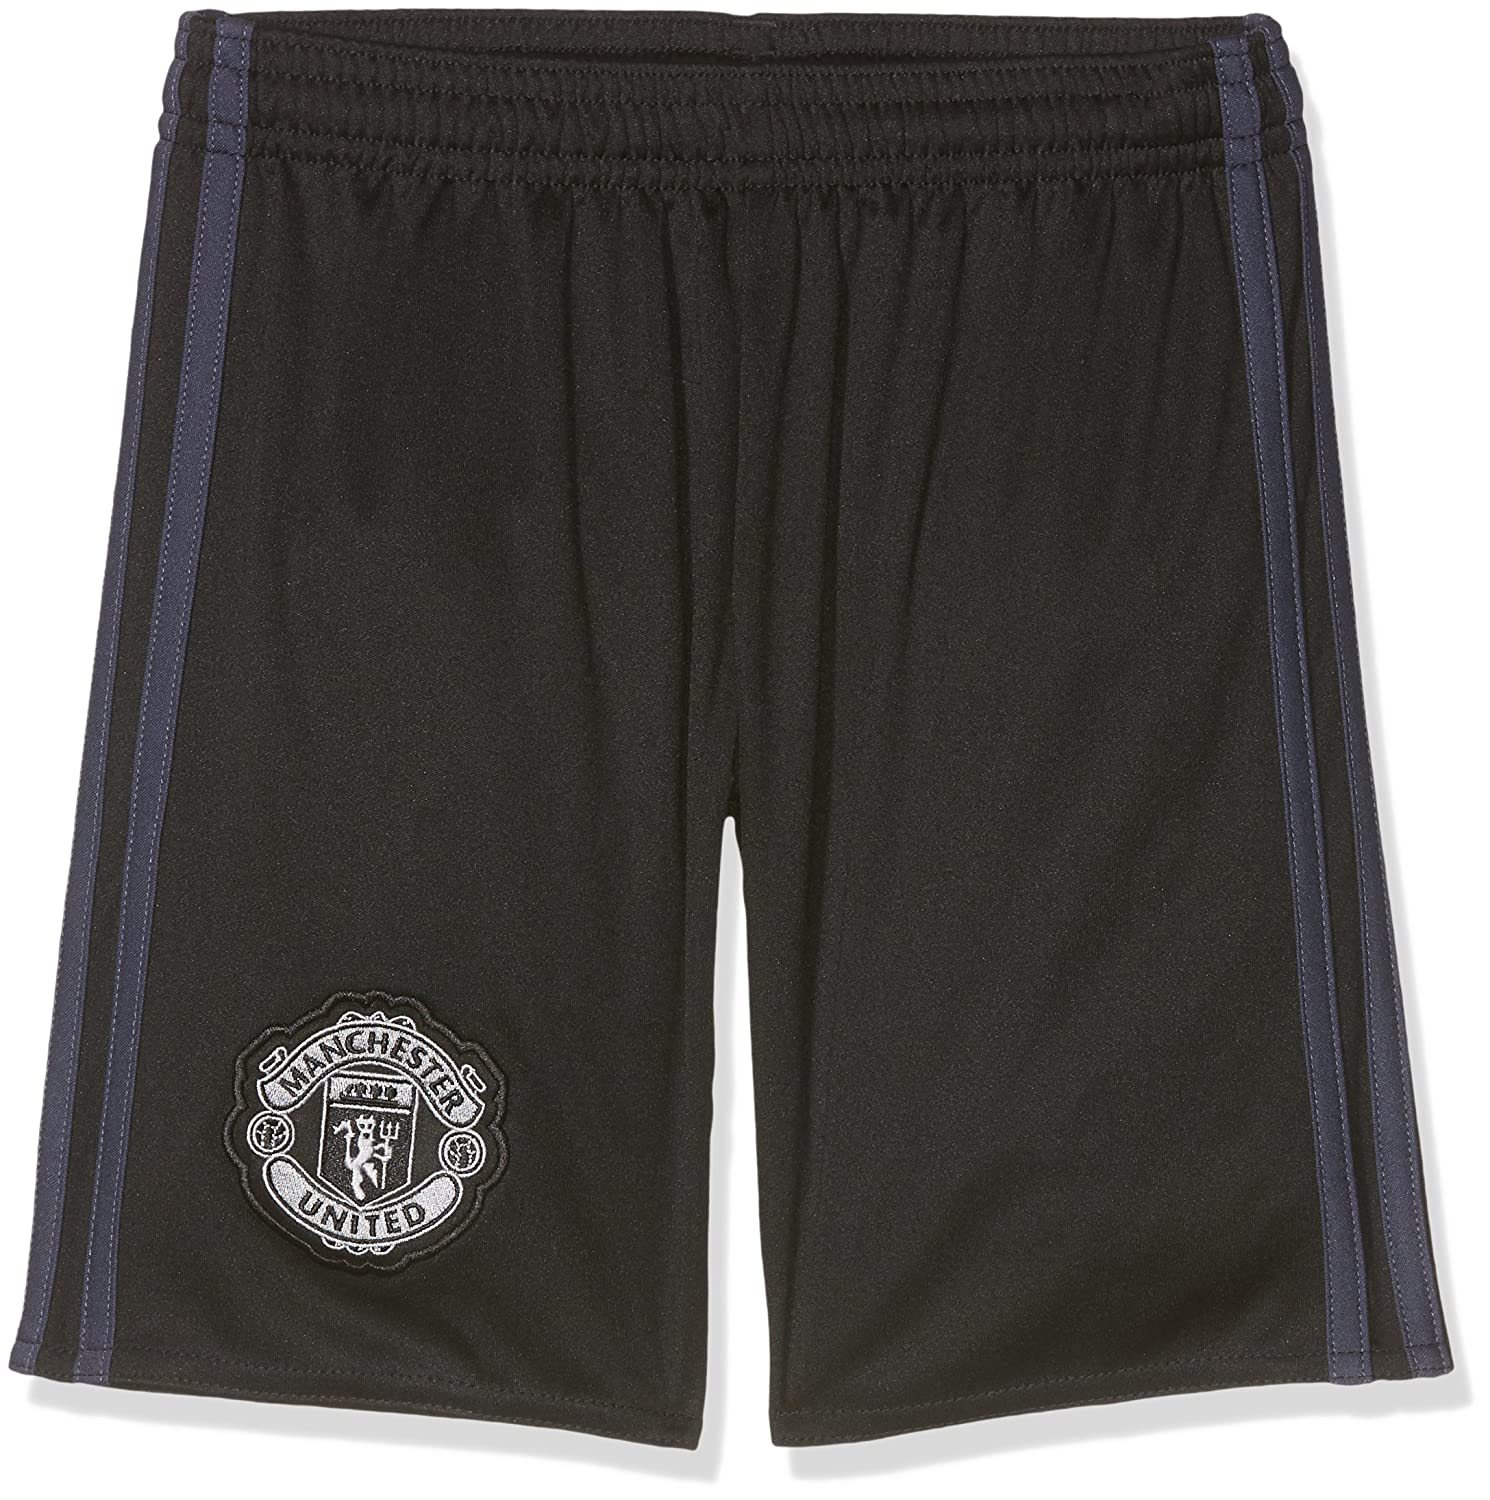 adidas Children's Manchester United Home Goalkeeper Shorts Size 176 AZ7551